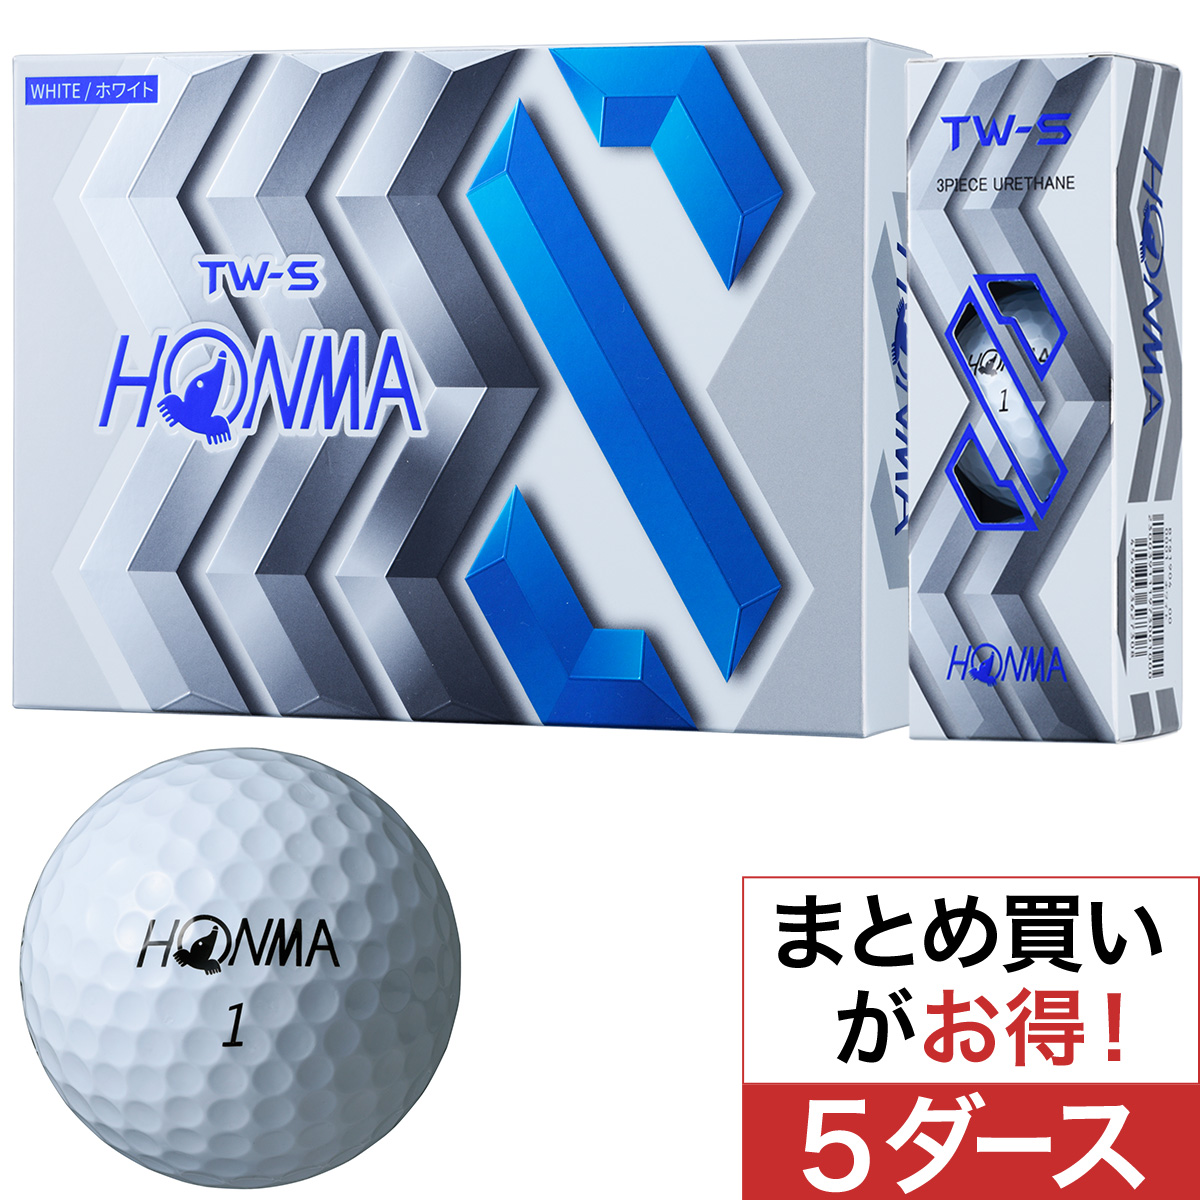 TW-S ボール 5ダースセット